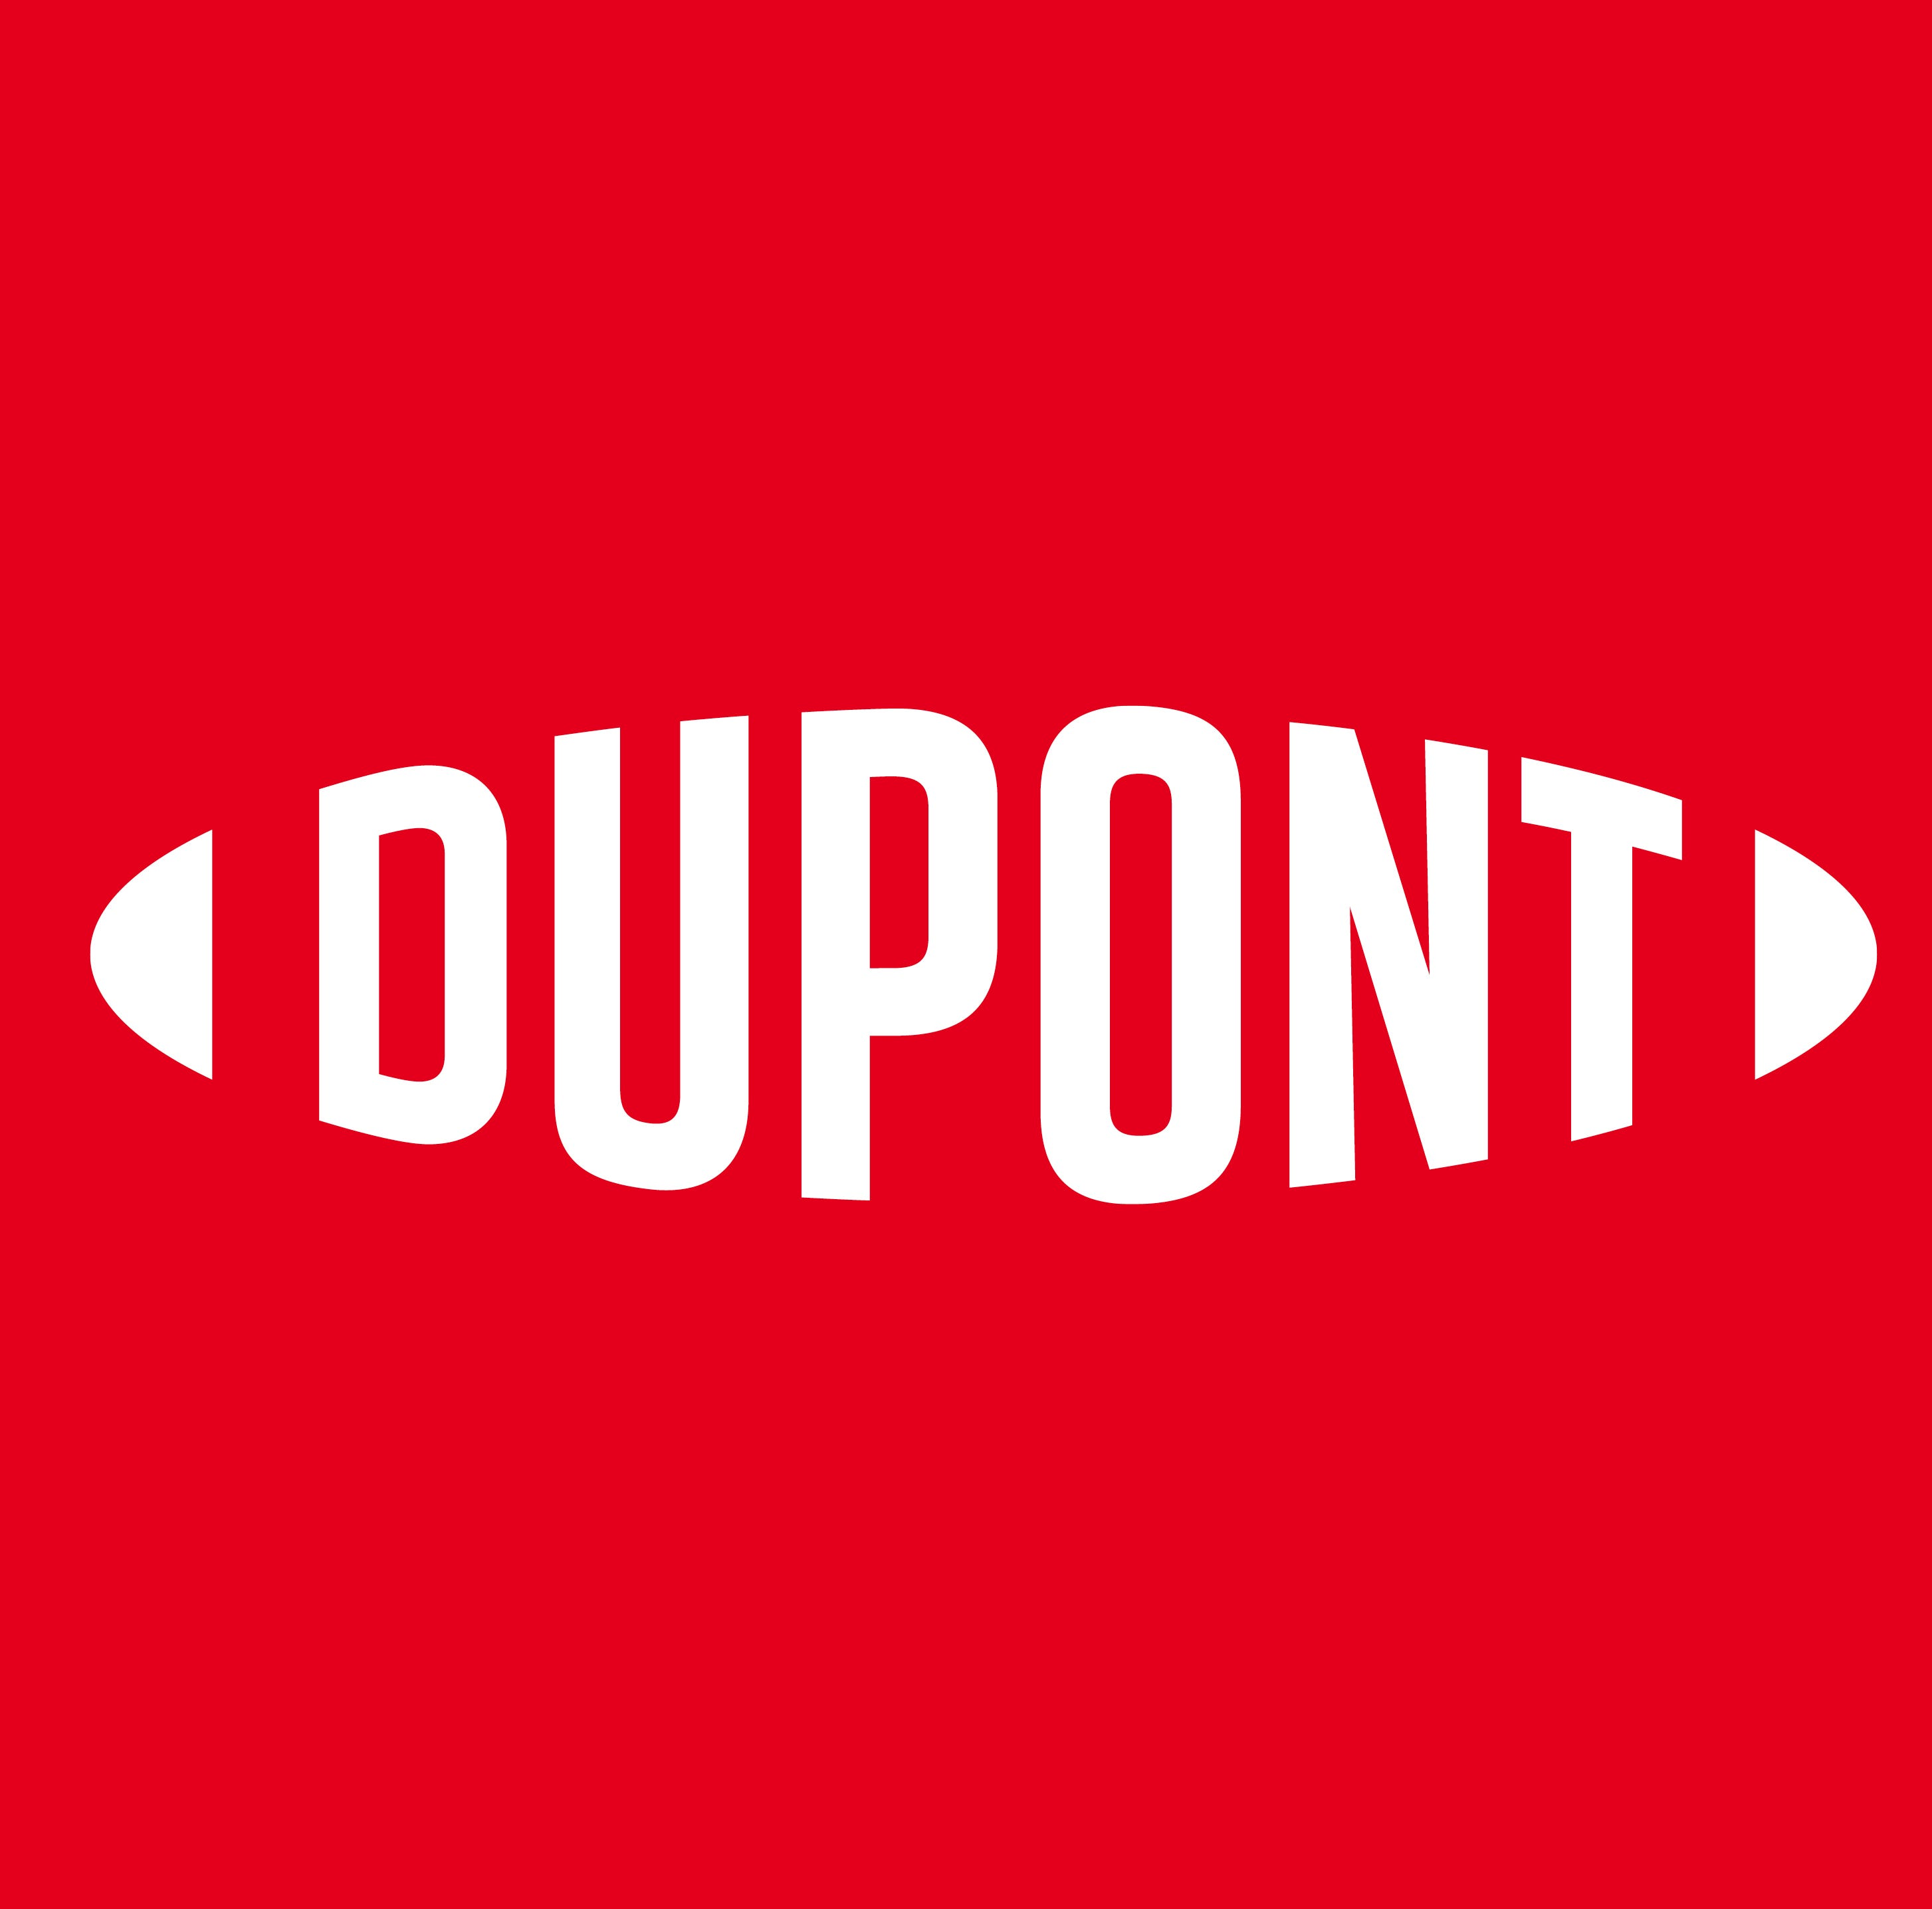 DowDuPont unveiled the logo for what will be the new DuPont company next year. The design discards the century old oval around the DuPont name.